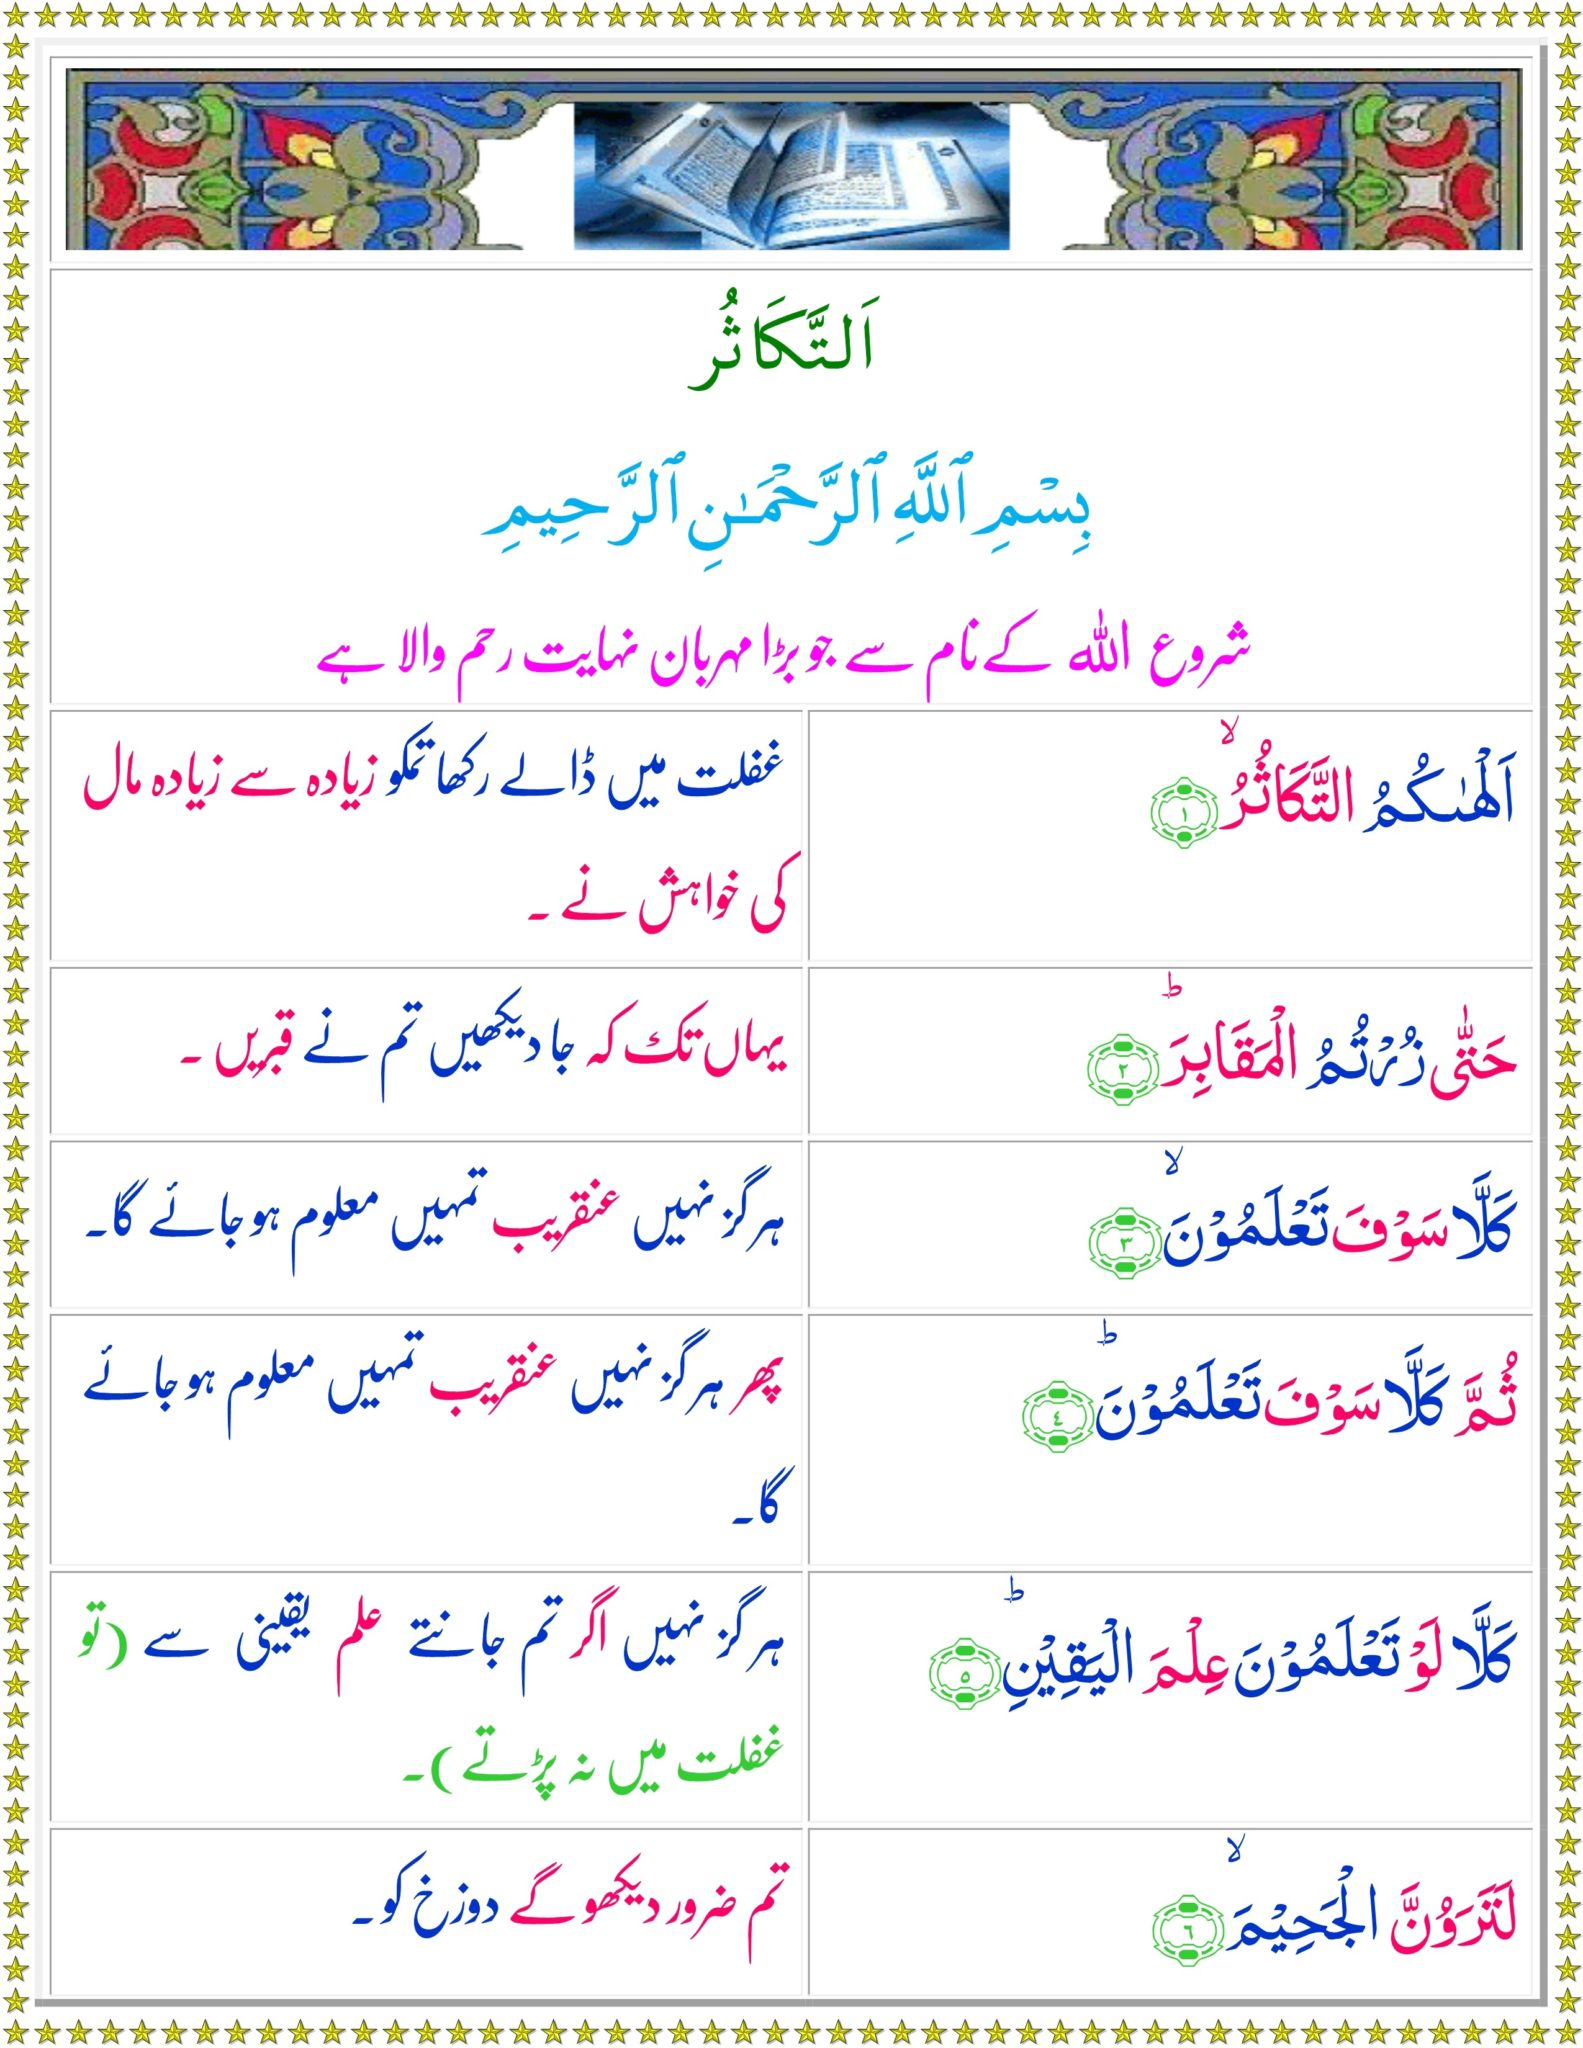 Surah Takasur translation in Urdu, Hindi